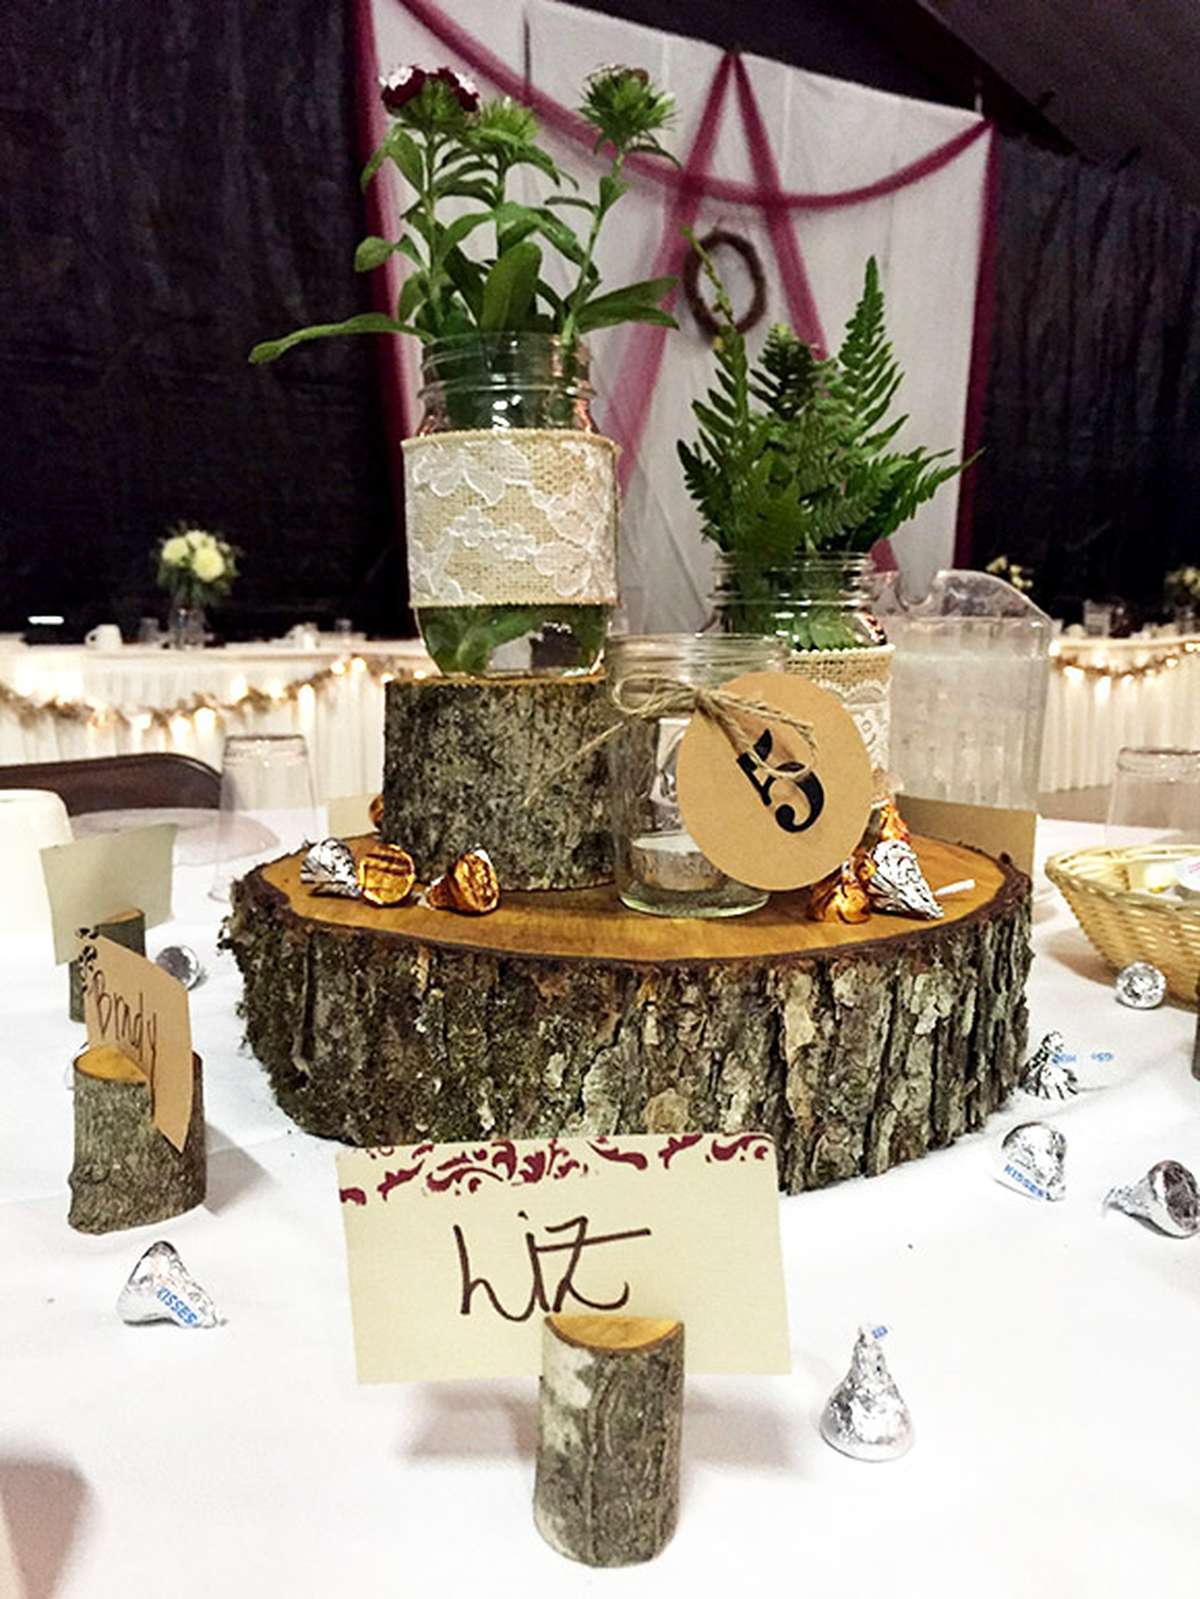 DIY Wood Wedding Centerpieces